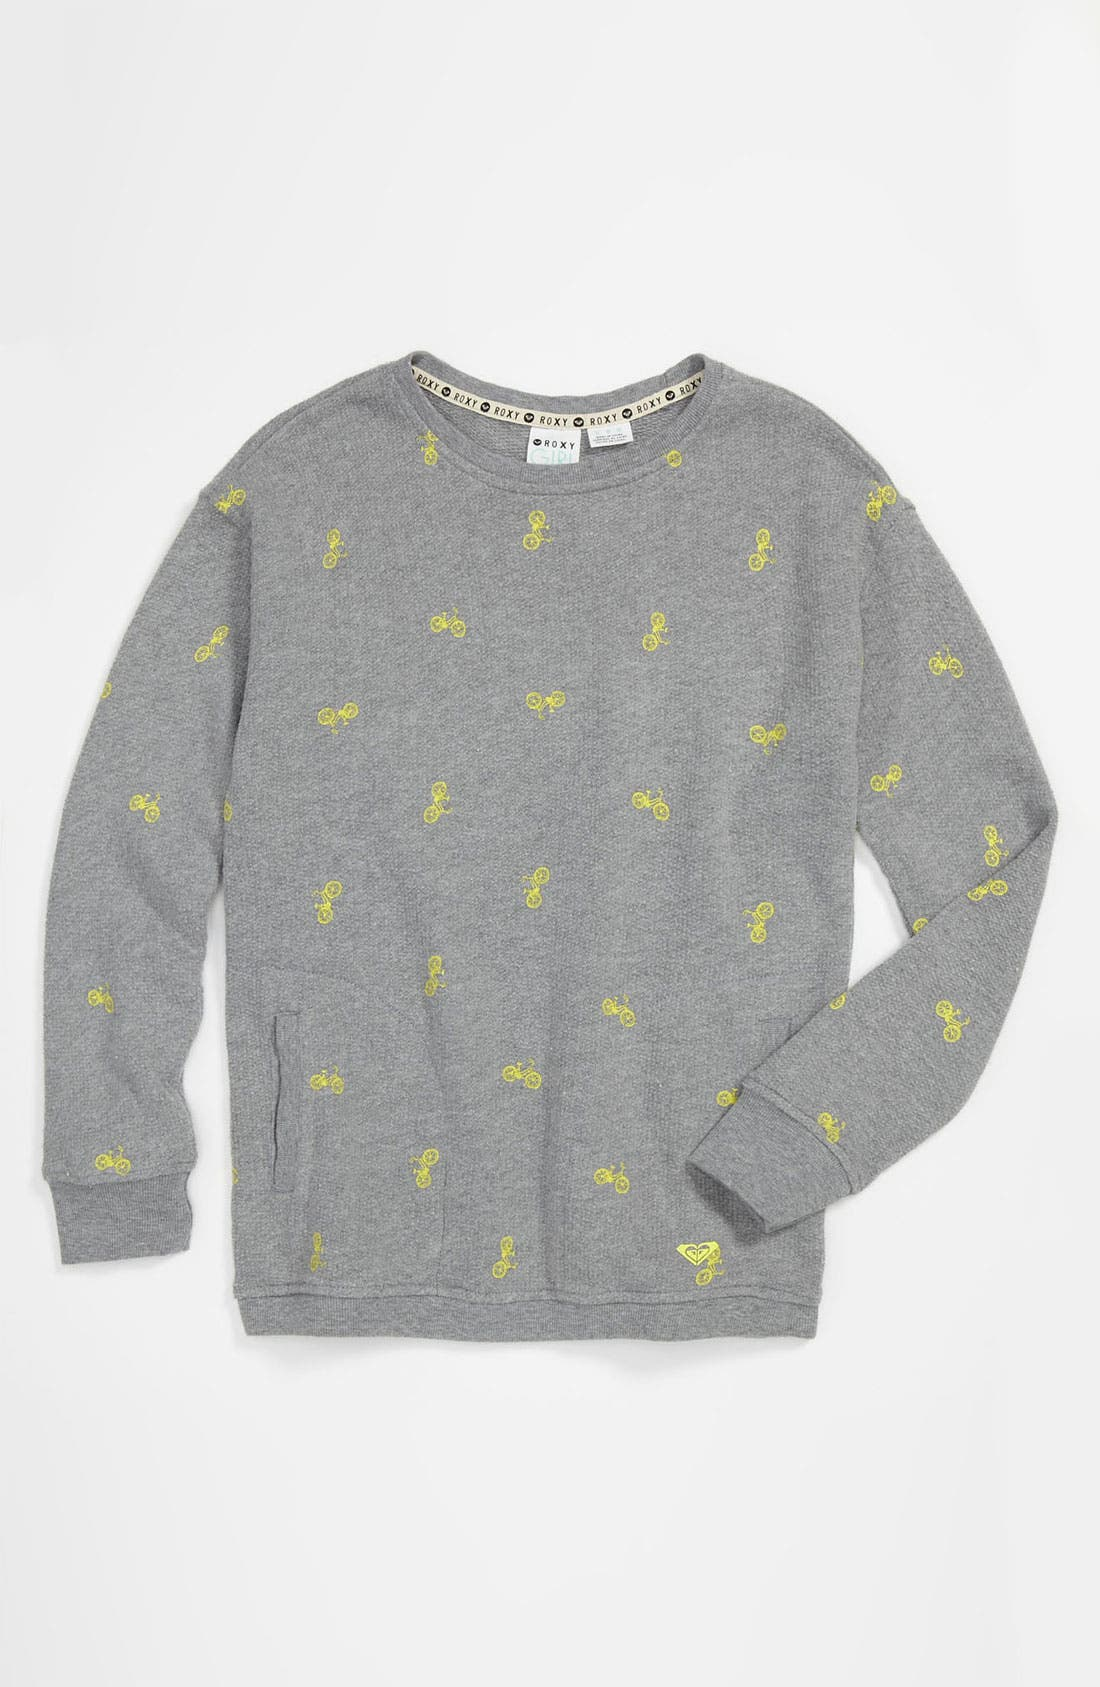 Main Image - 'Gum Drops' Terry Cloth Sweater (Little Girls)